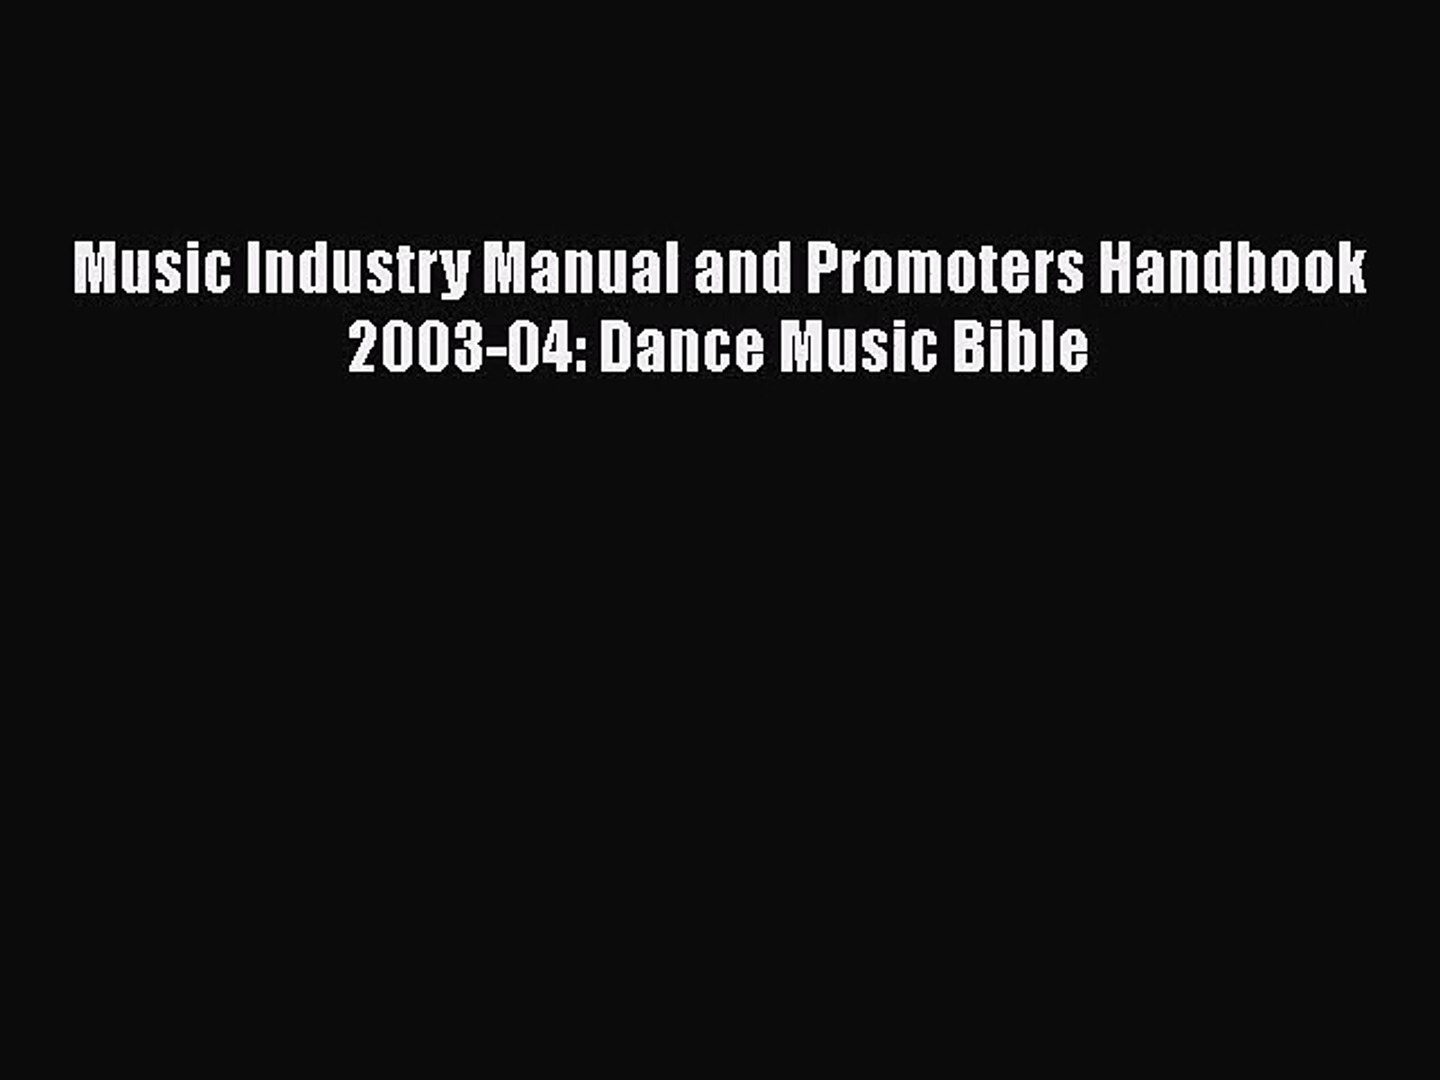 [PDF Download] Music Industry Manual and Promoters Handbook 2003-04: Dance Music Bible [Download]